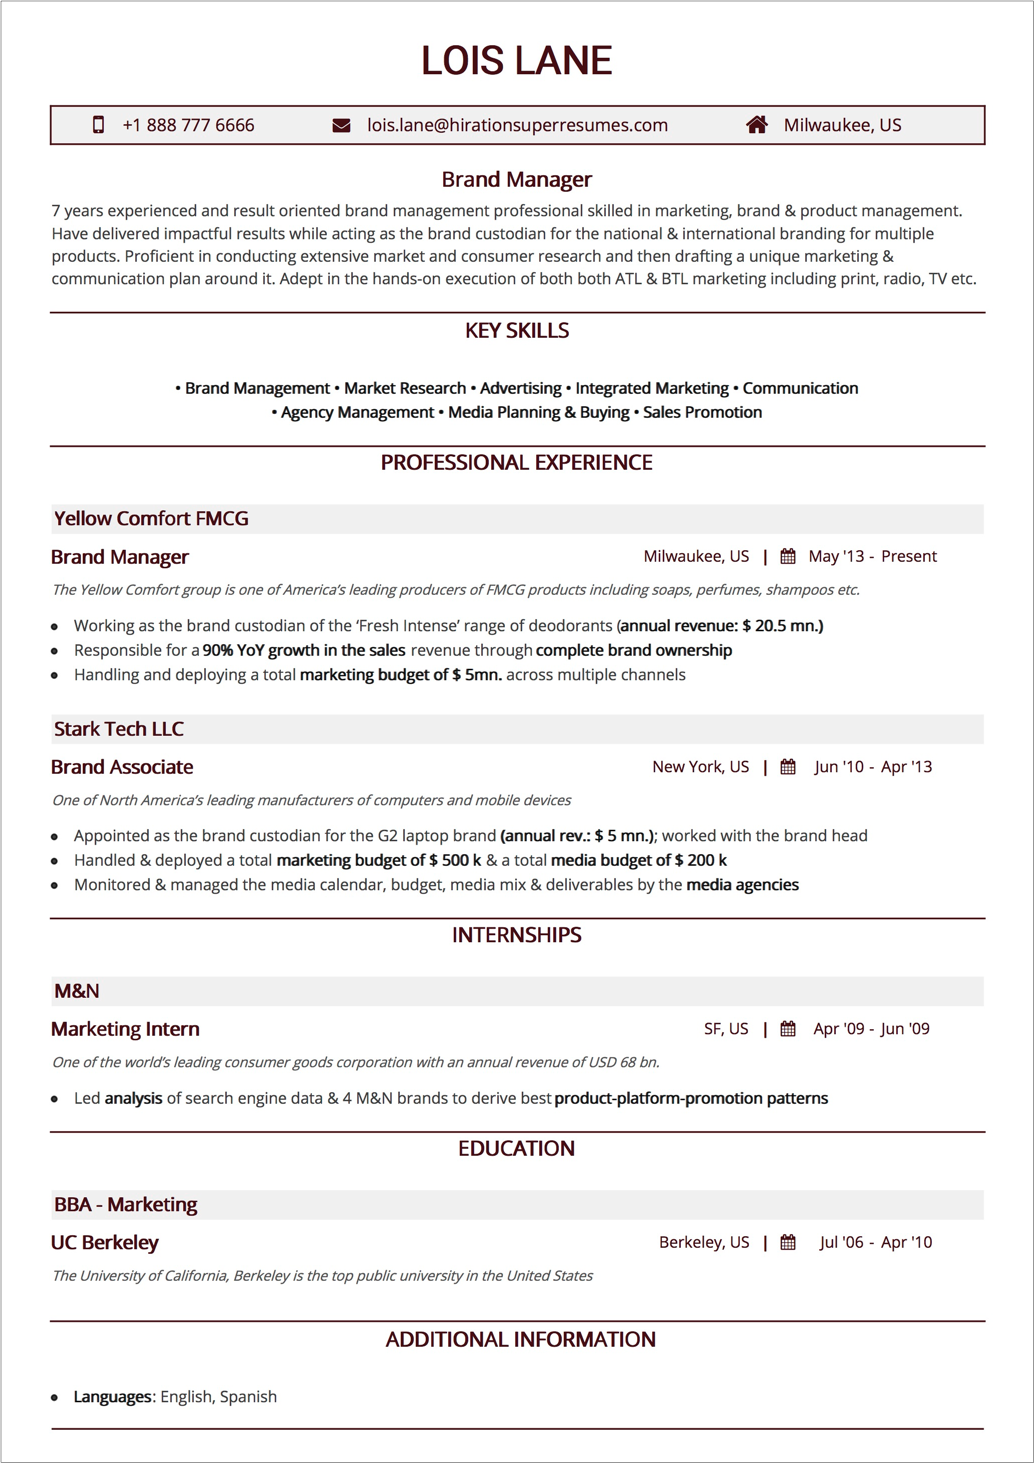 Business analyst resume examples 2018 guide best samples reversechronologicalresumeformatbusiness analyst wajeb Images